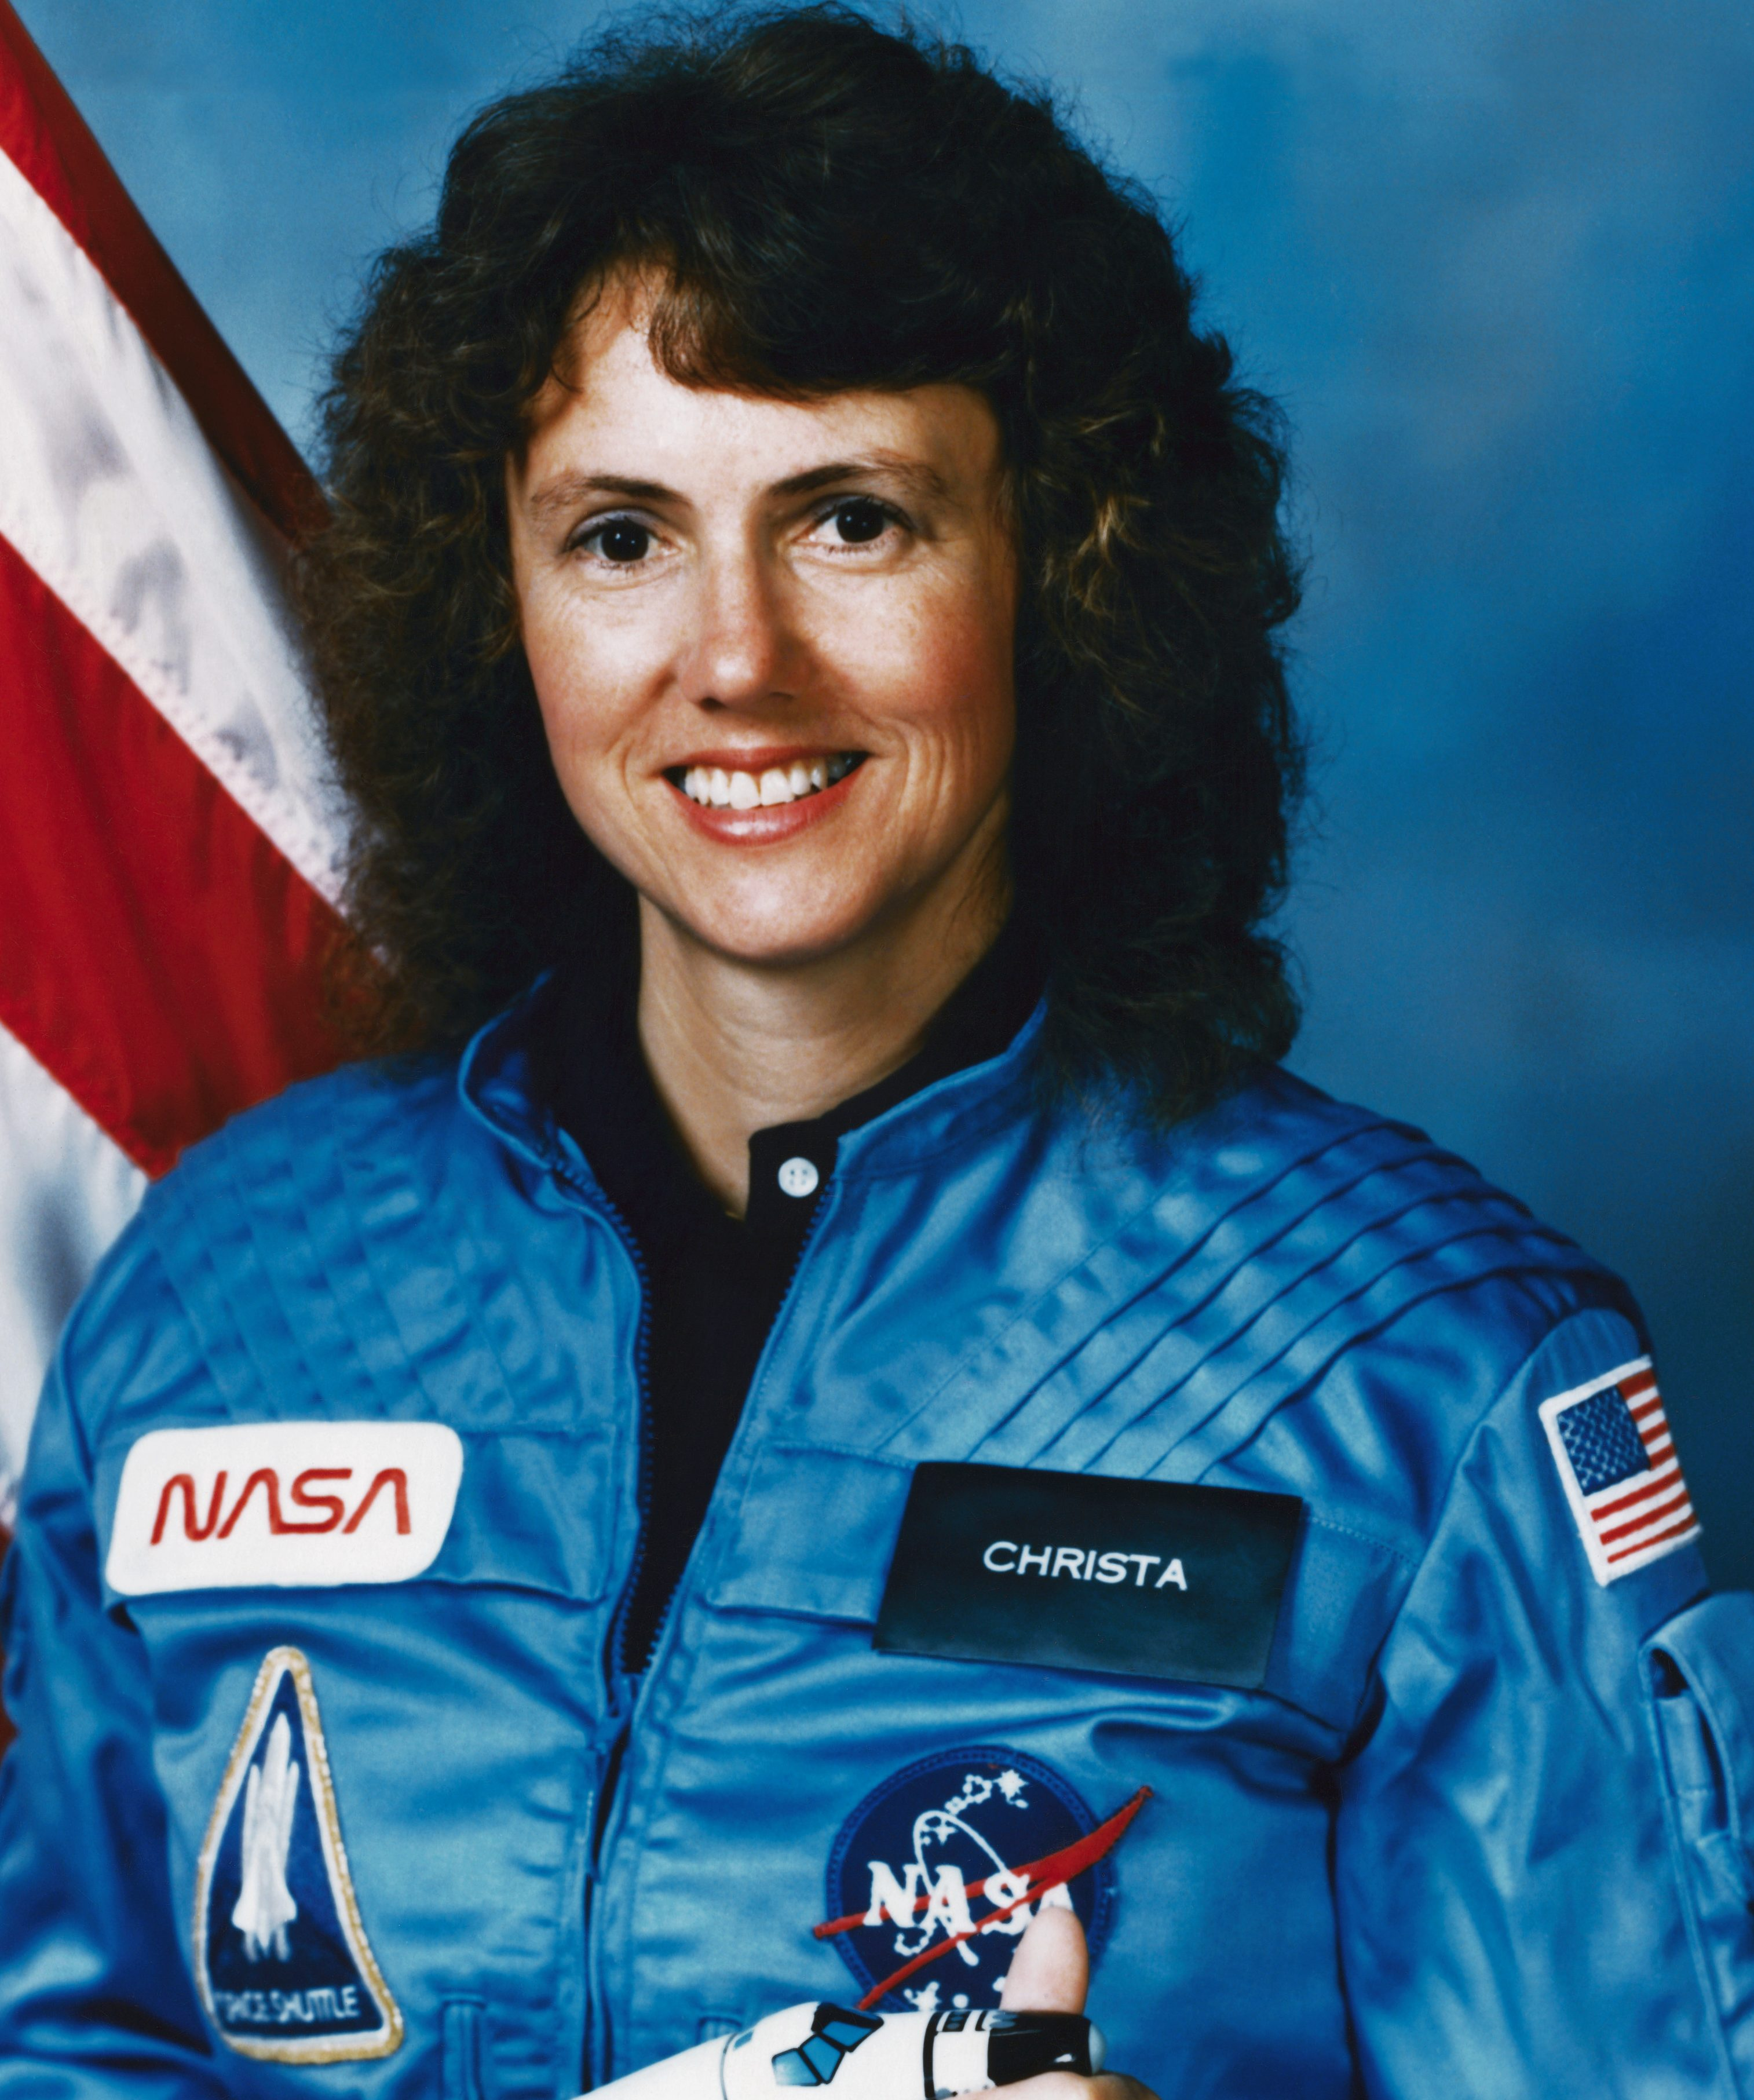 Christa McAuliffe died on board the doomed Space Shuttle Challenger astronaut